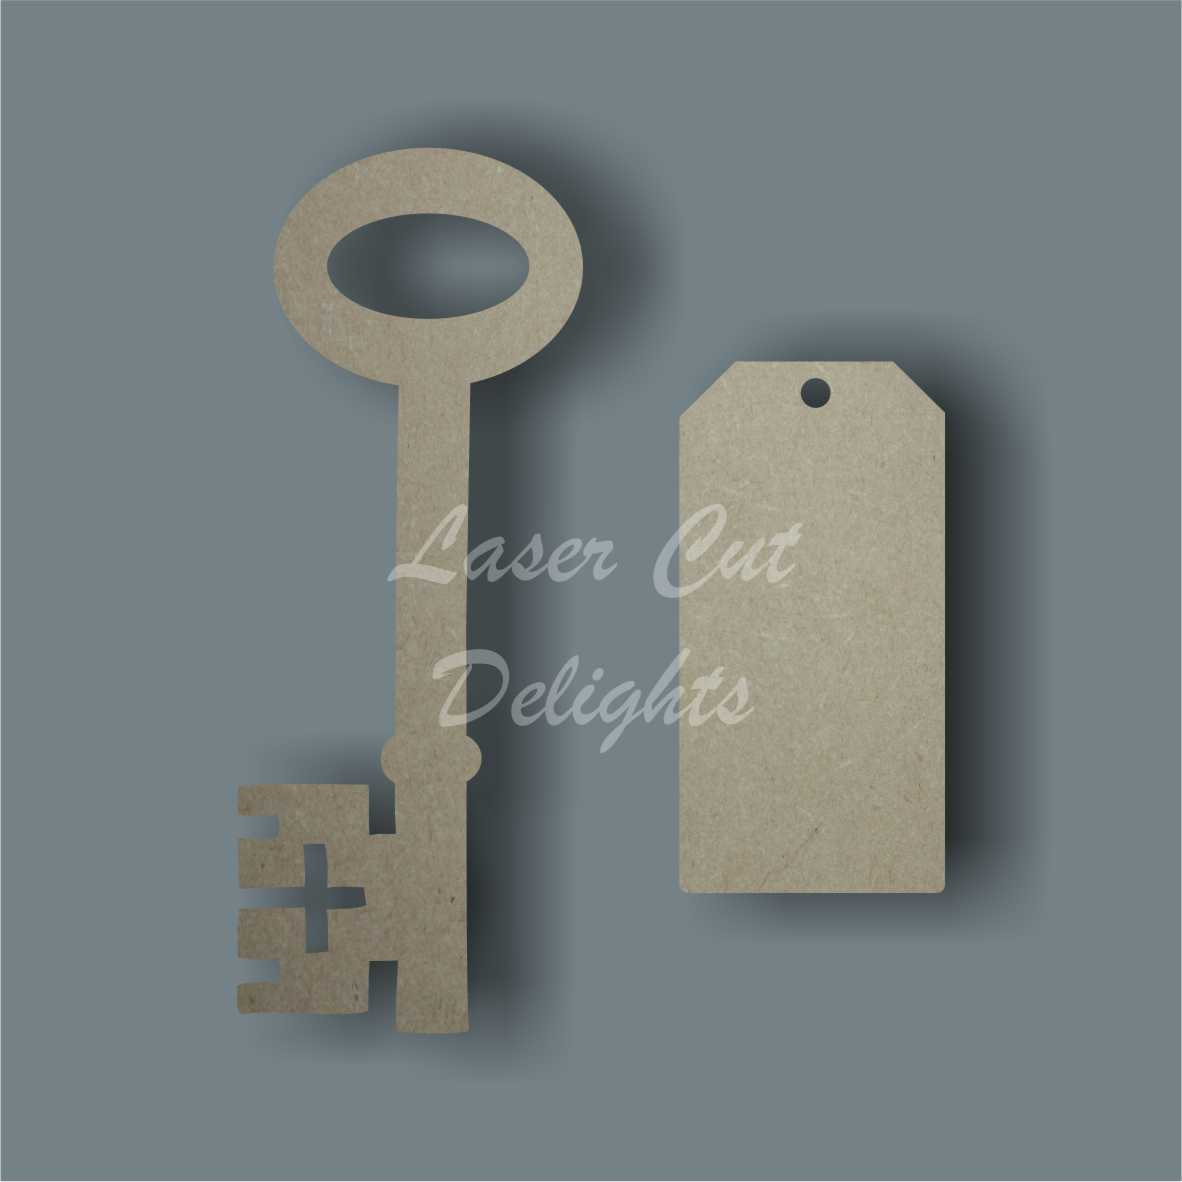 Key and Tag / Laser Cut Delights